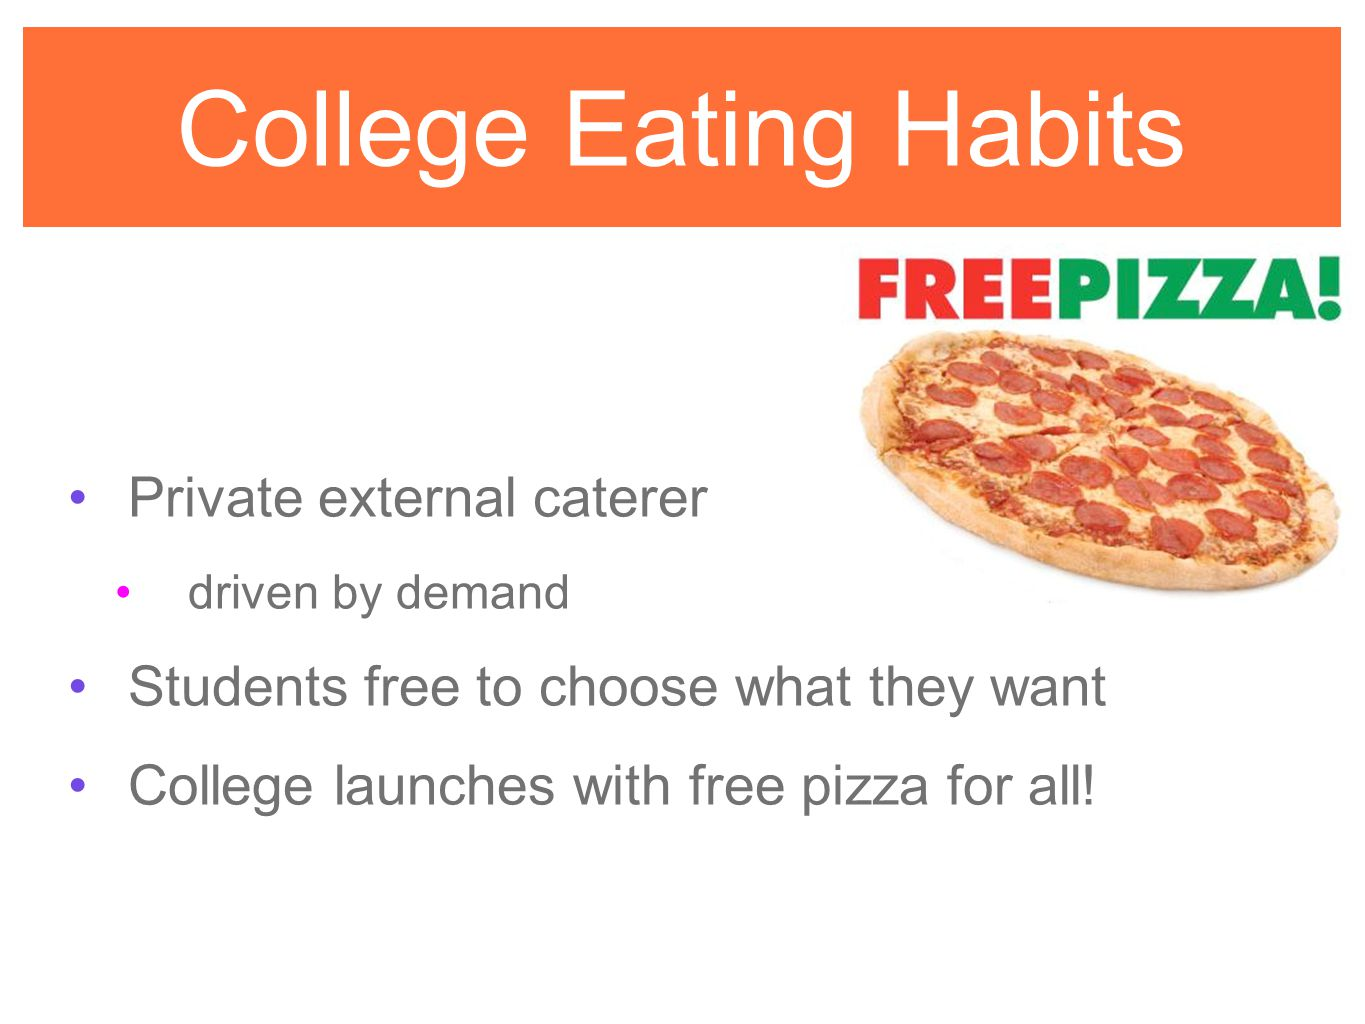 College Eating Habits Private external caterer driven by demand Students free to choose what they want College launches with free pizza for all!